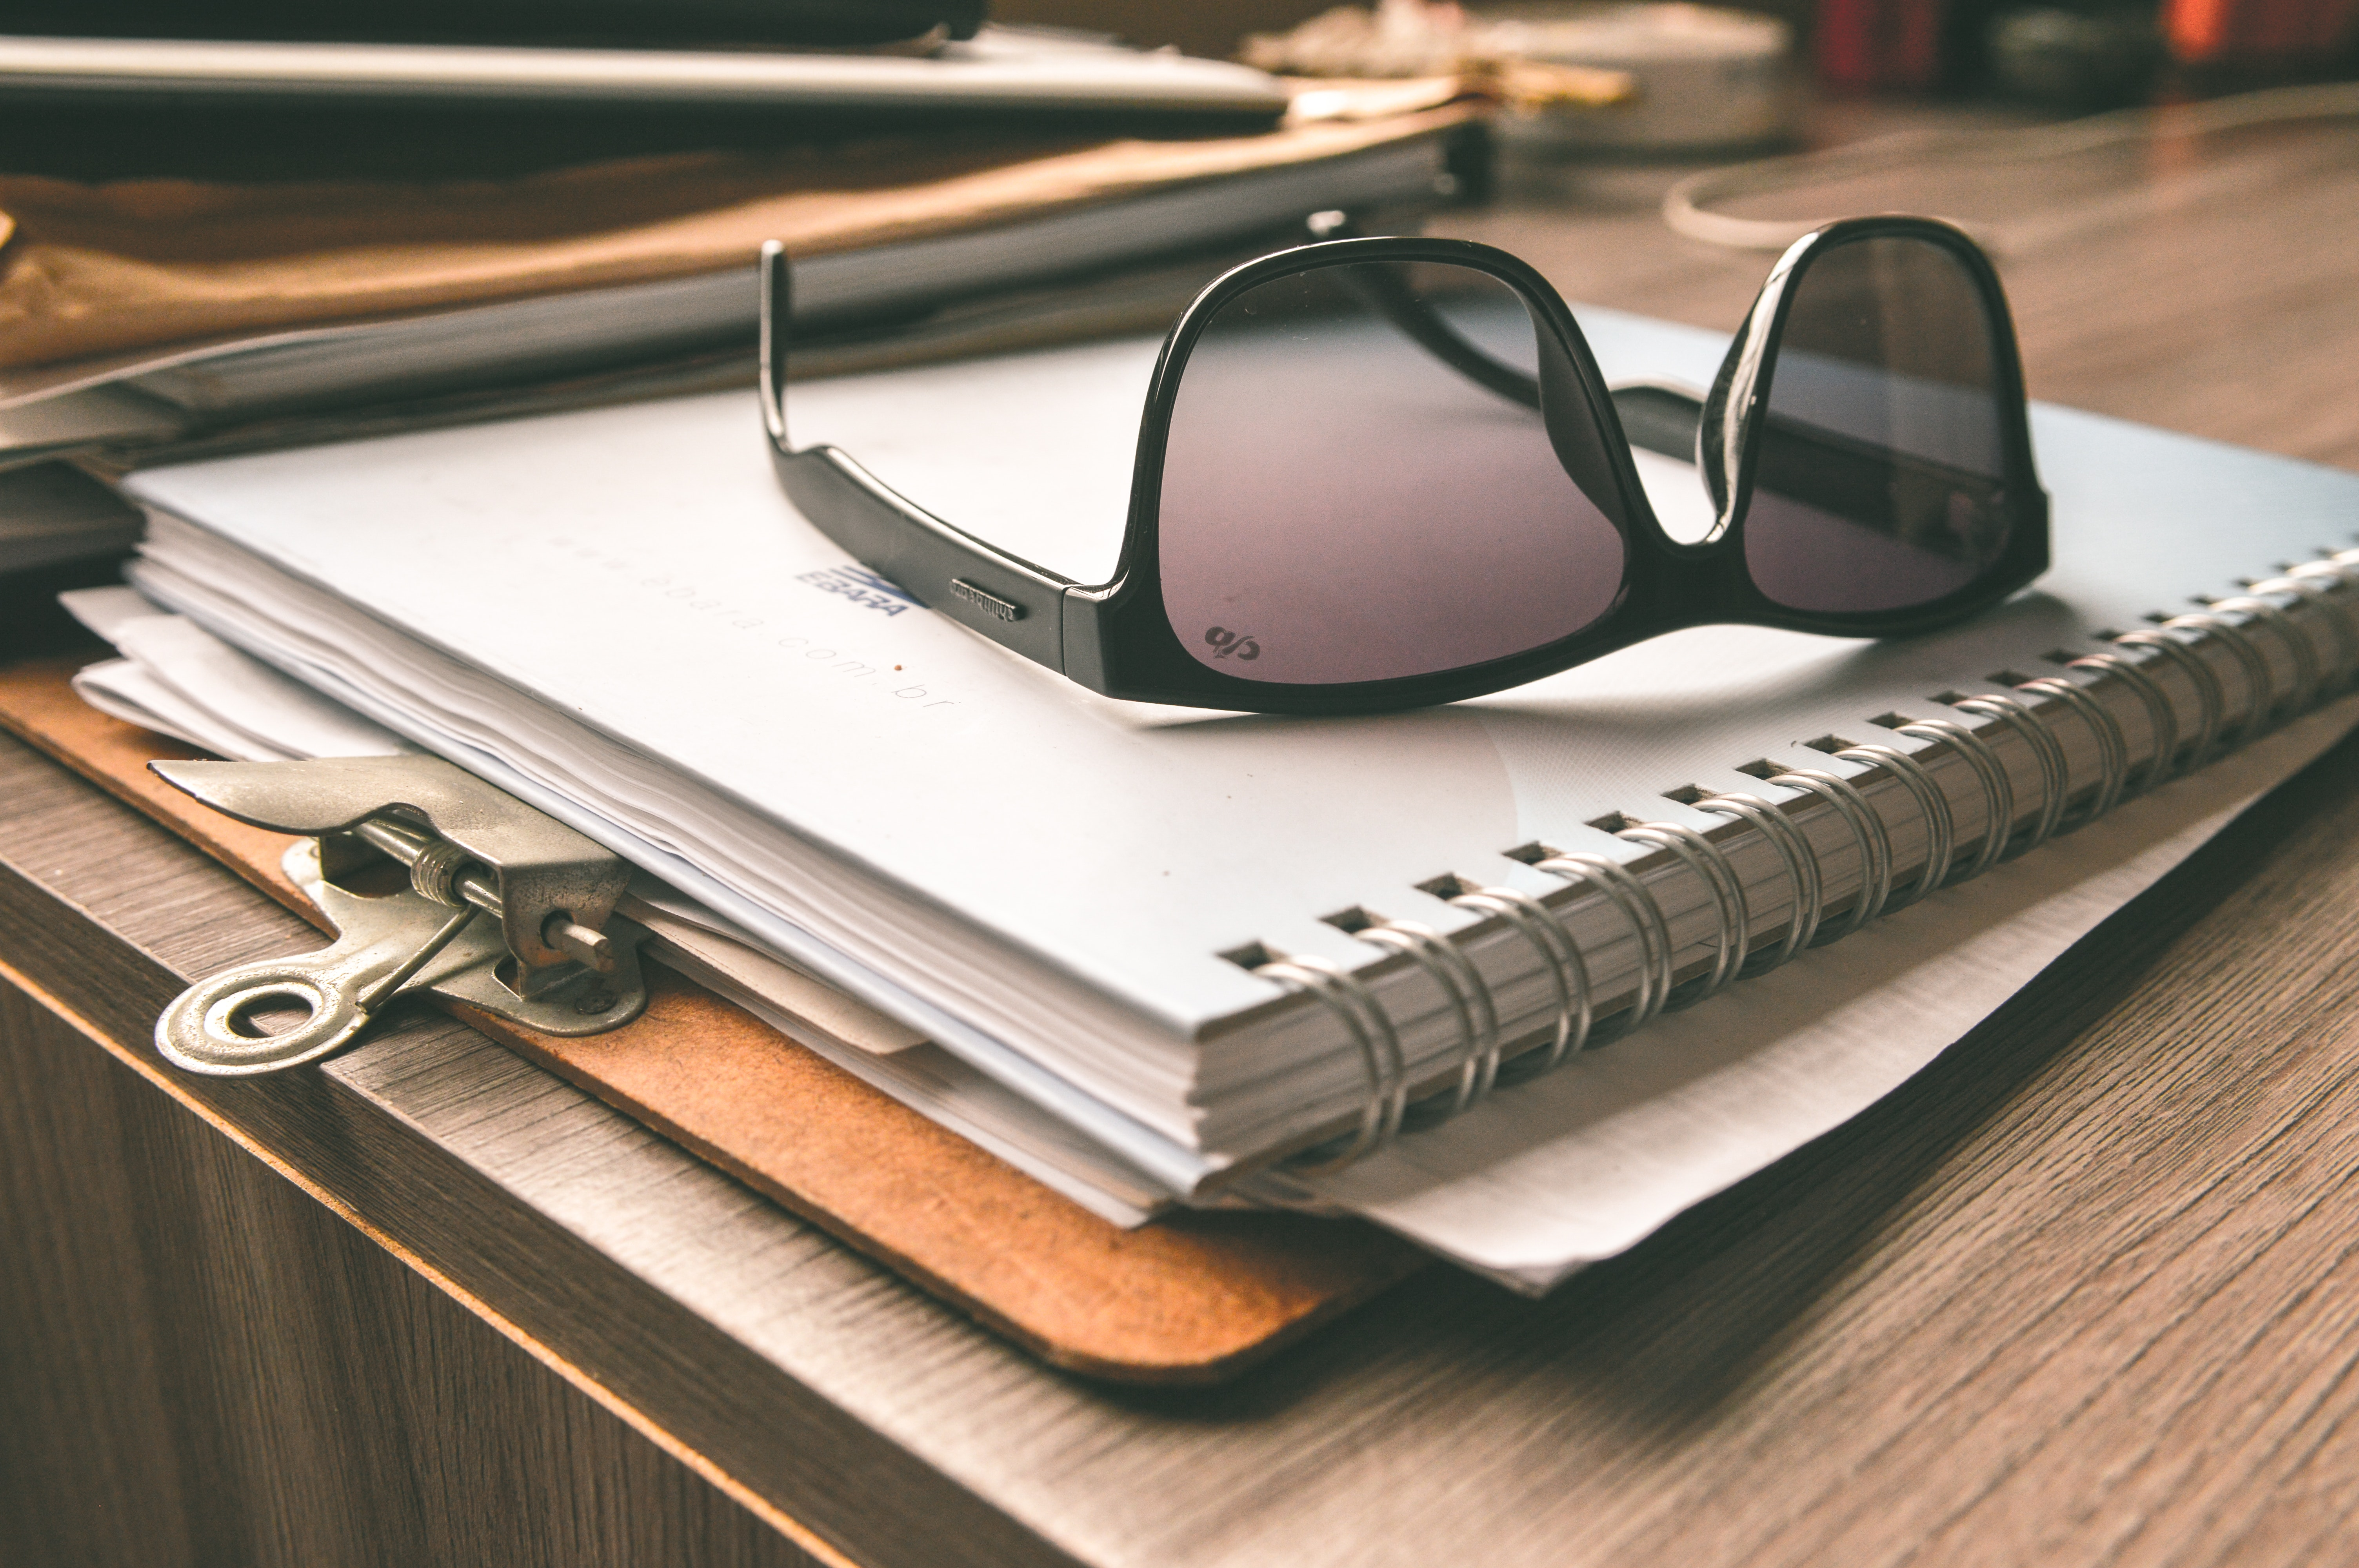 Black Frame Wayfarer Sunglasses on White Notebook, Sunglasses, Table, Papers, Eyewear, HQ Photo